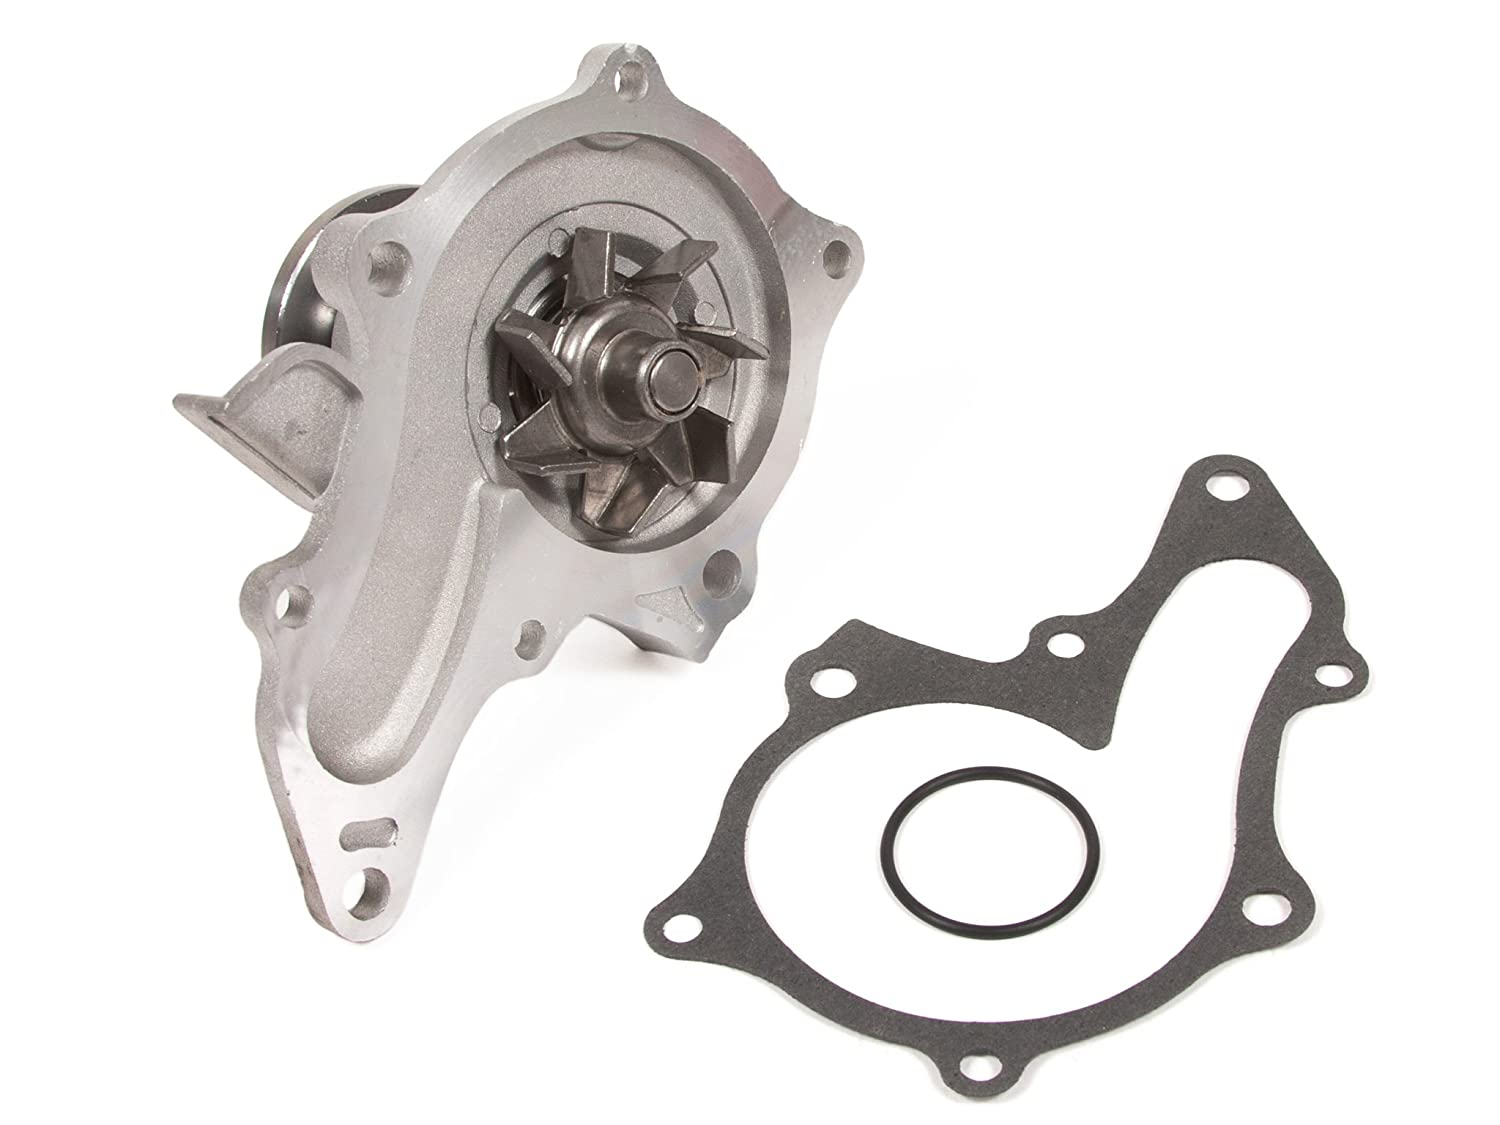 Evergreen TBK236WPT Fits 93-97 Toyota Corolla Geo Prizm 1.6L DOHC 4AFE 16V Timing Belt Kit Water Pump